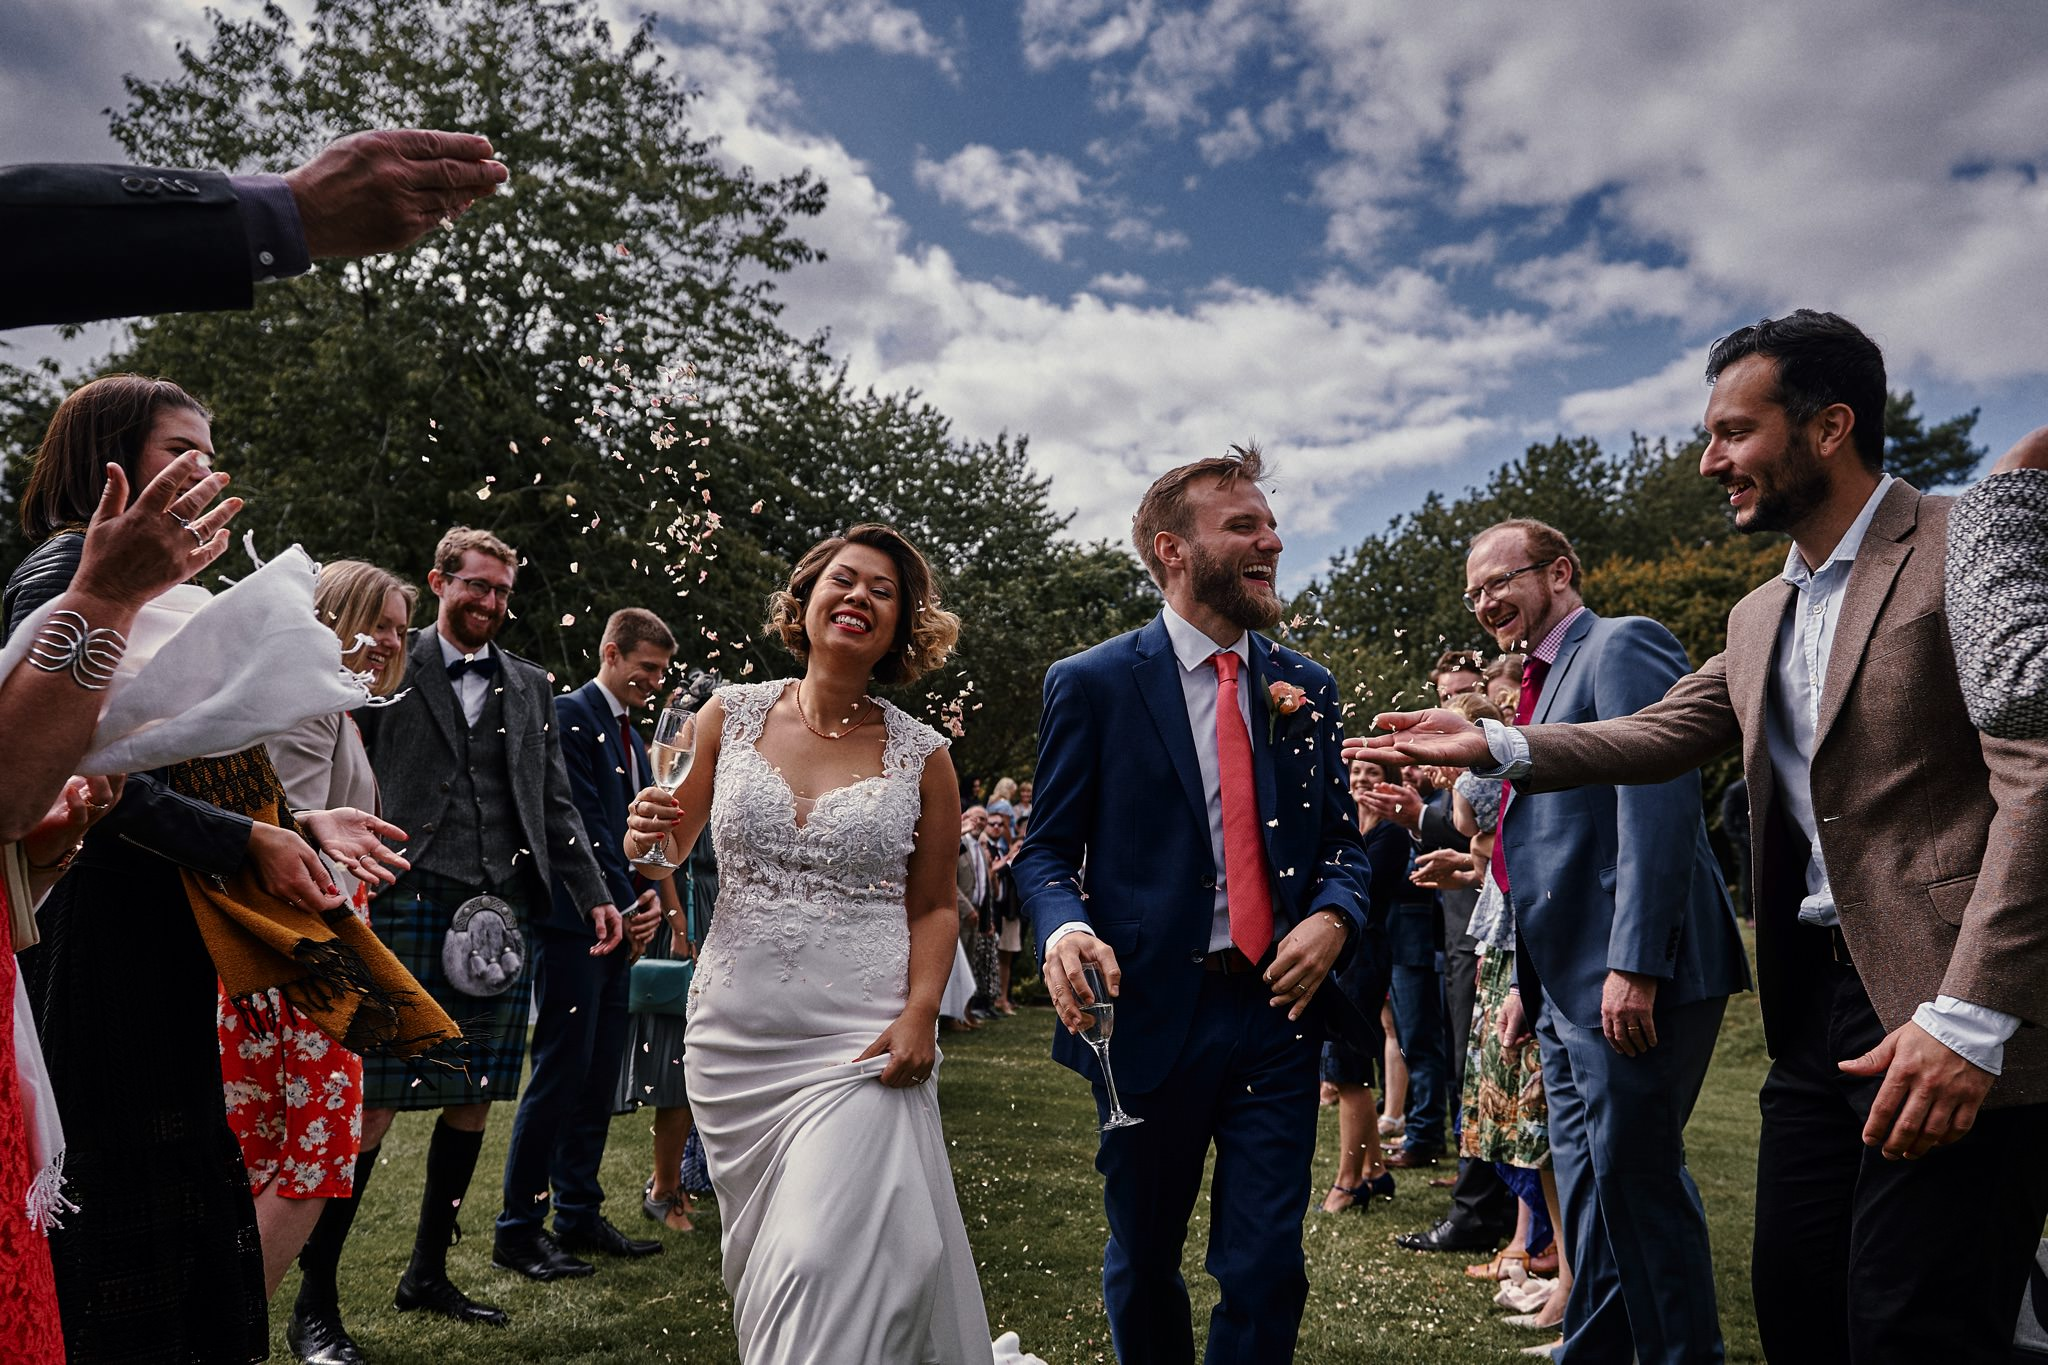 Bride and groom dodge confetti in the beautiful gardens at Walcott Hall Hotel, Shropshire.